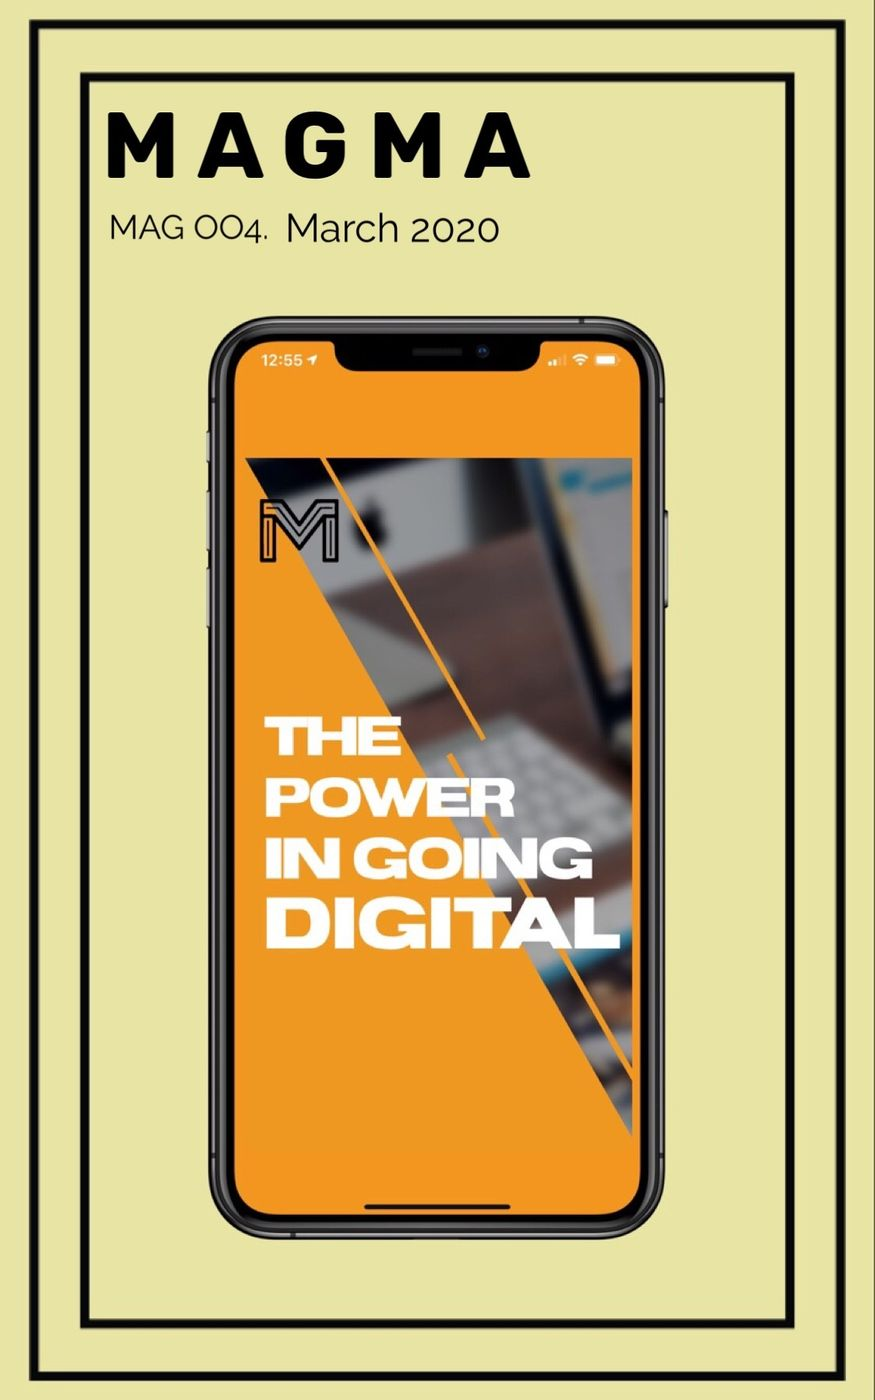 Going Digital can transform your business.  Learn how you can get the most out of Magma with your business and content.